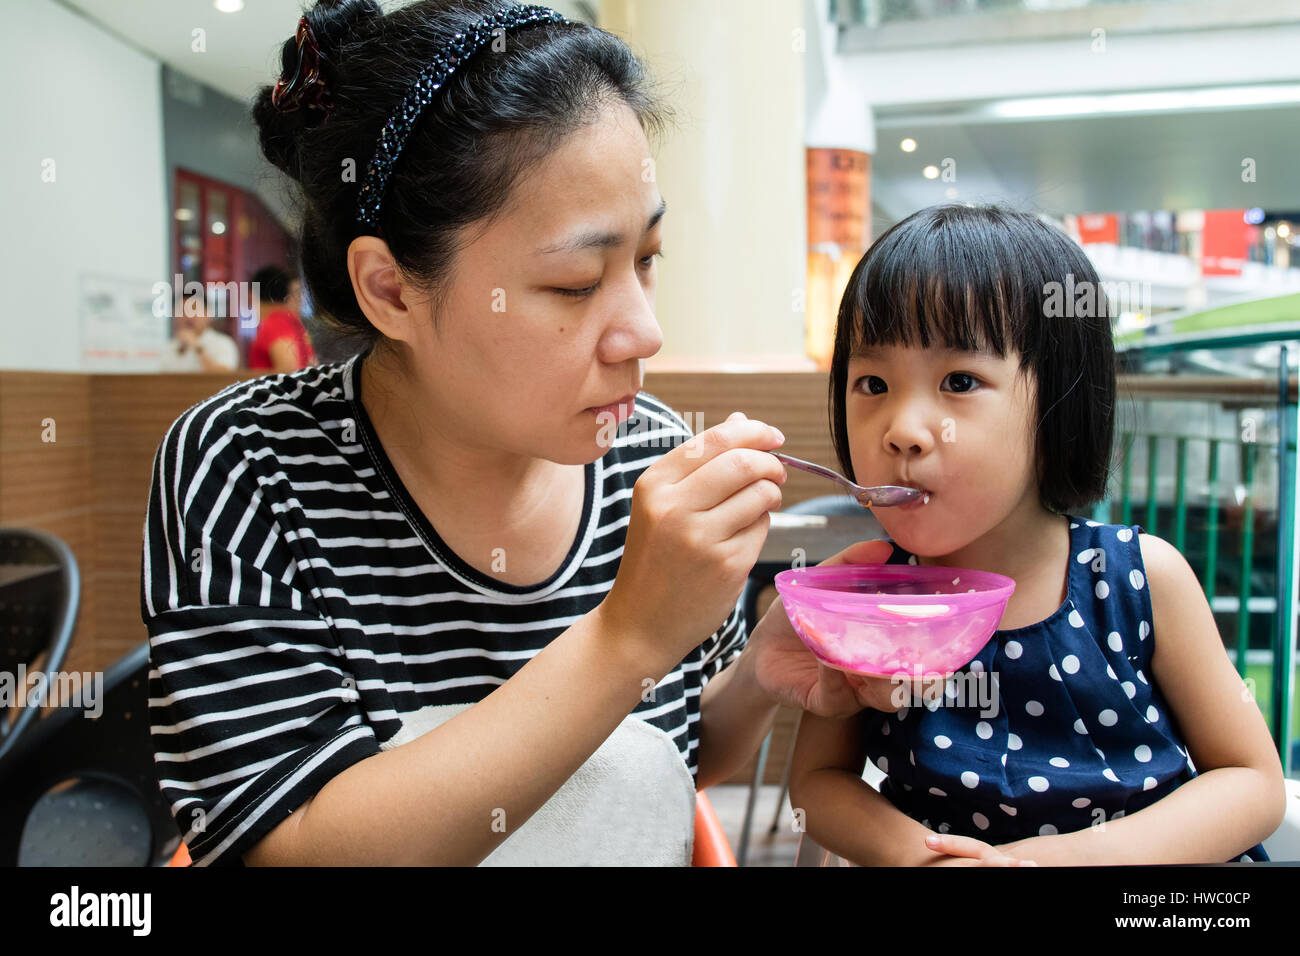 Asian Mother Feeding Her Daughter in Outdoor Cafe - Stock Image